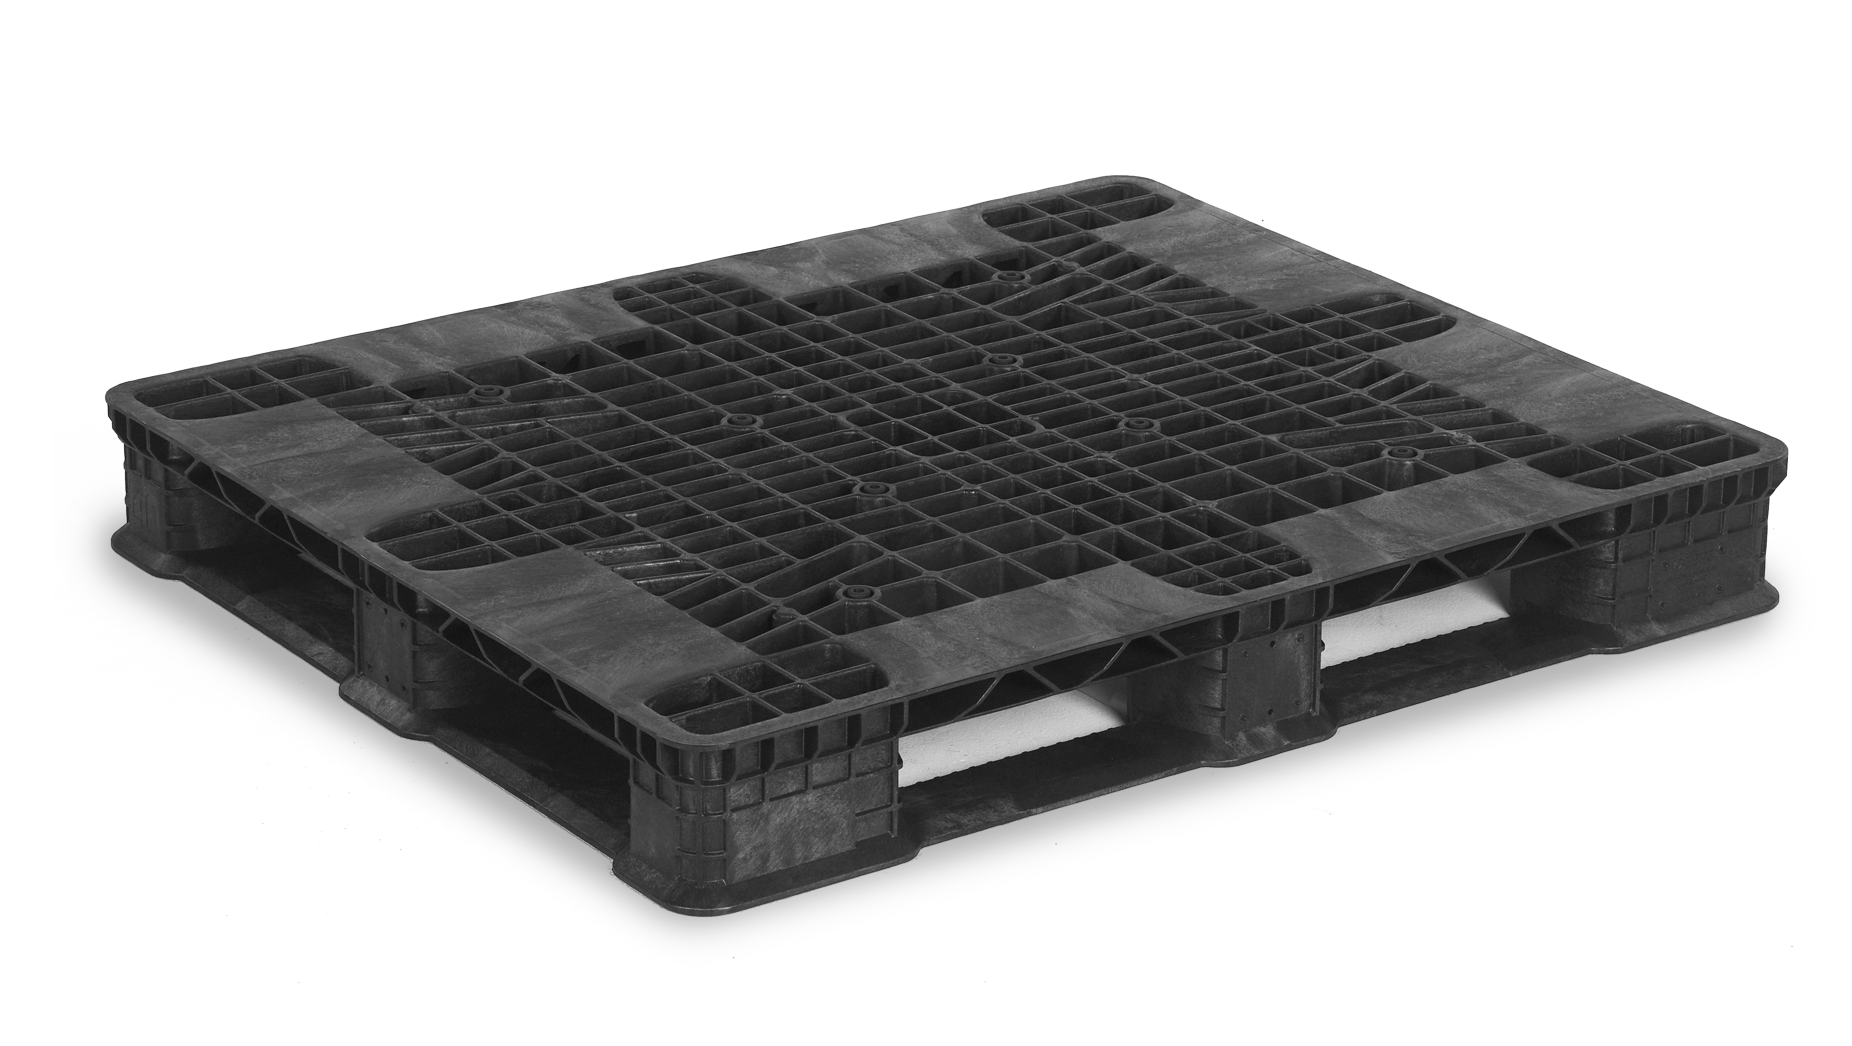 ORBIS INTRODUCES PROLIANT™, A NEW MATERIAL FOR USE IN ITS FAMILY OF FIRE-RETARDANT PLASTIC PALLETS